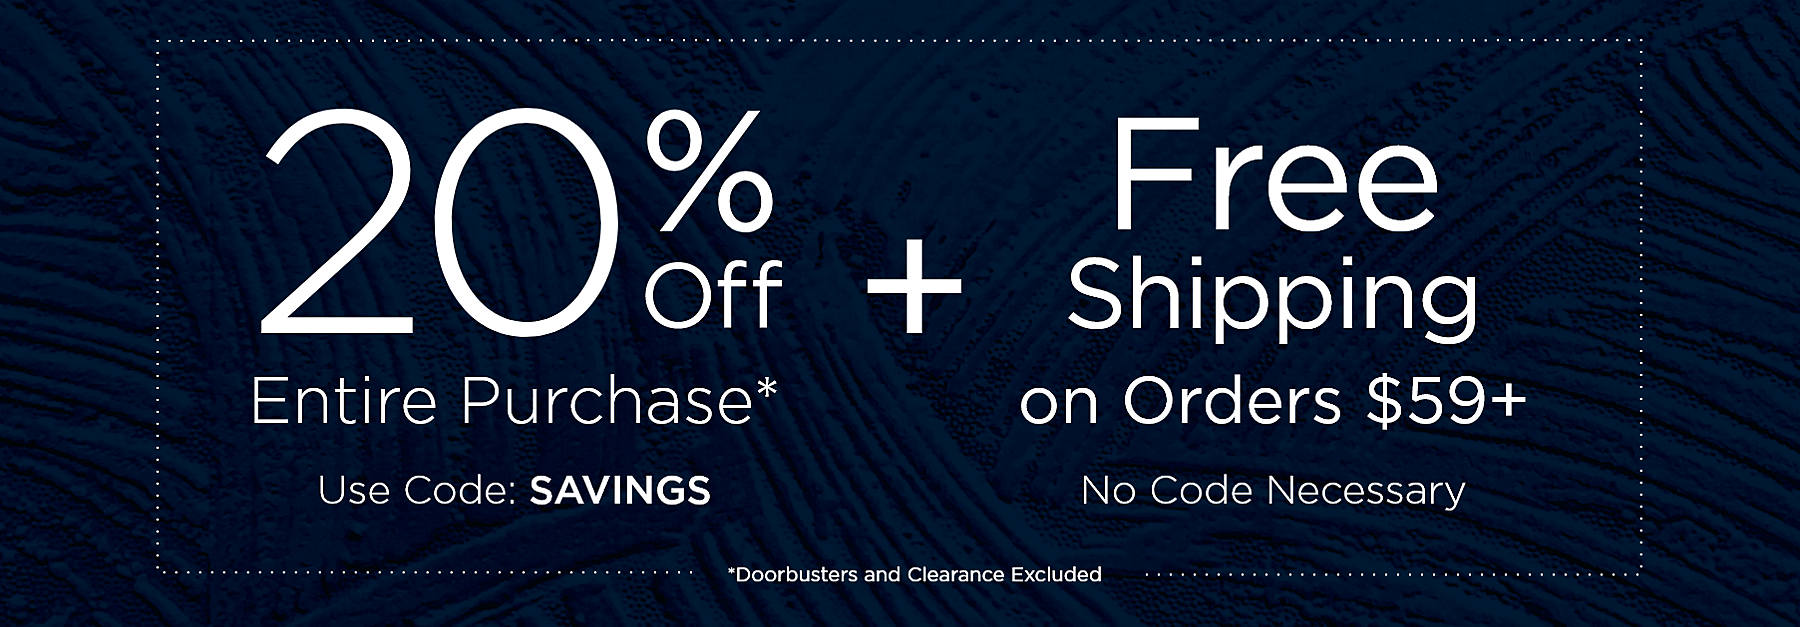 20% Off Entire Purchase* Use Code SAVINGS Doorbusters and Clearance Excluded PLUS Free Shipping on Orders $59+ No Code Necessary